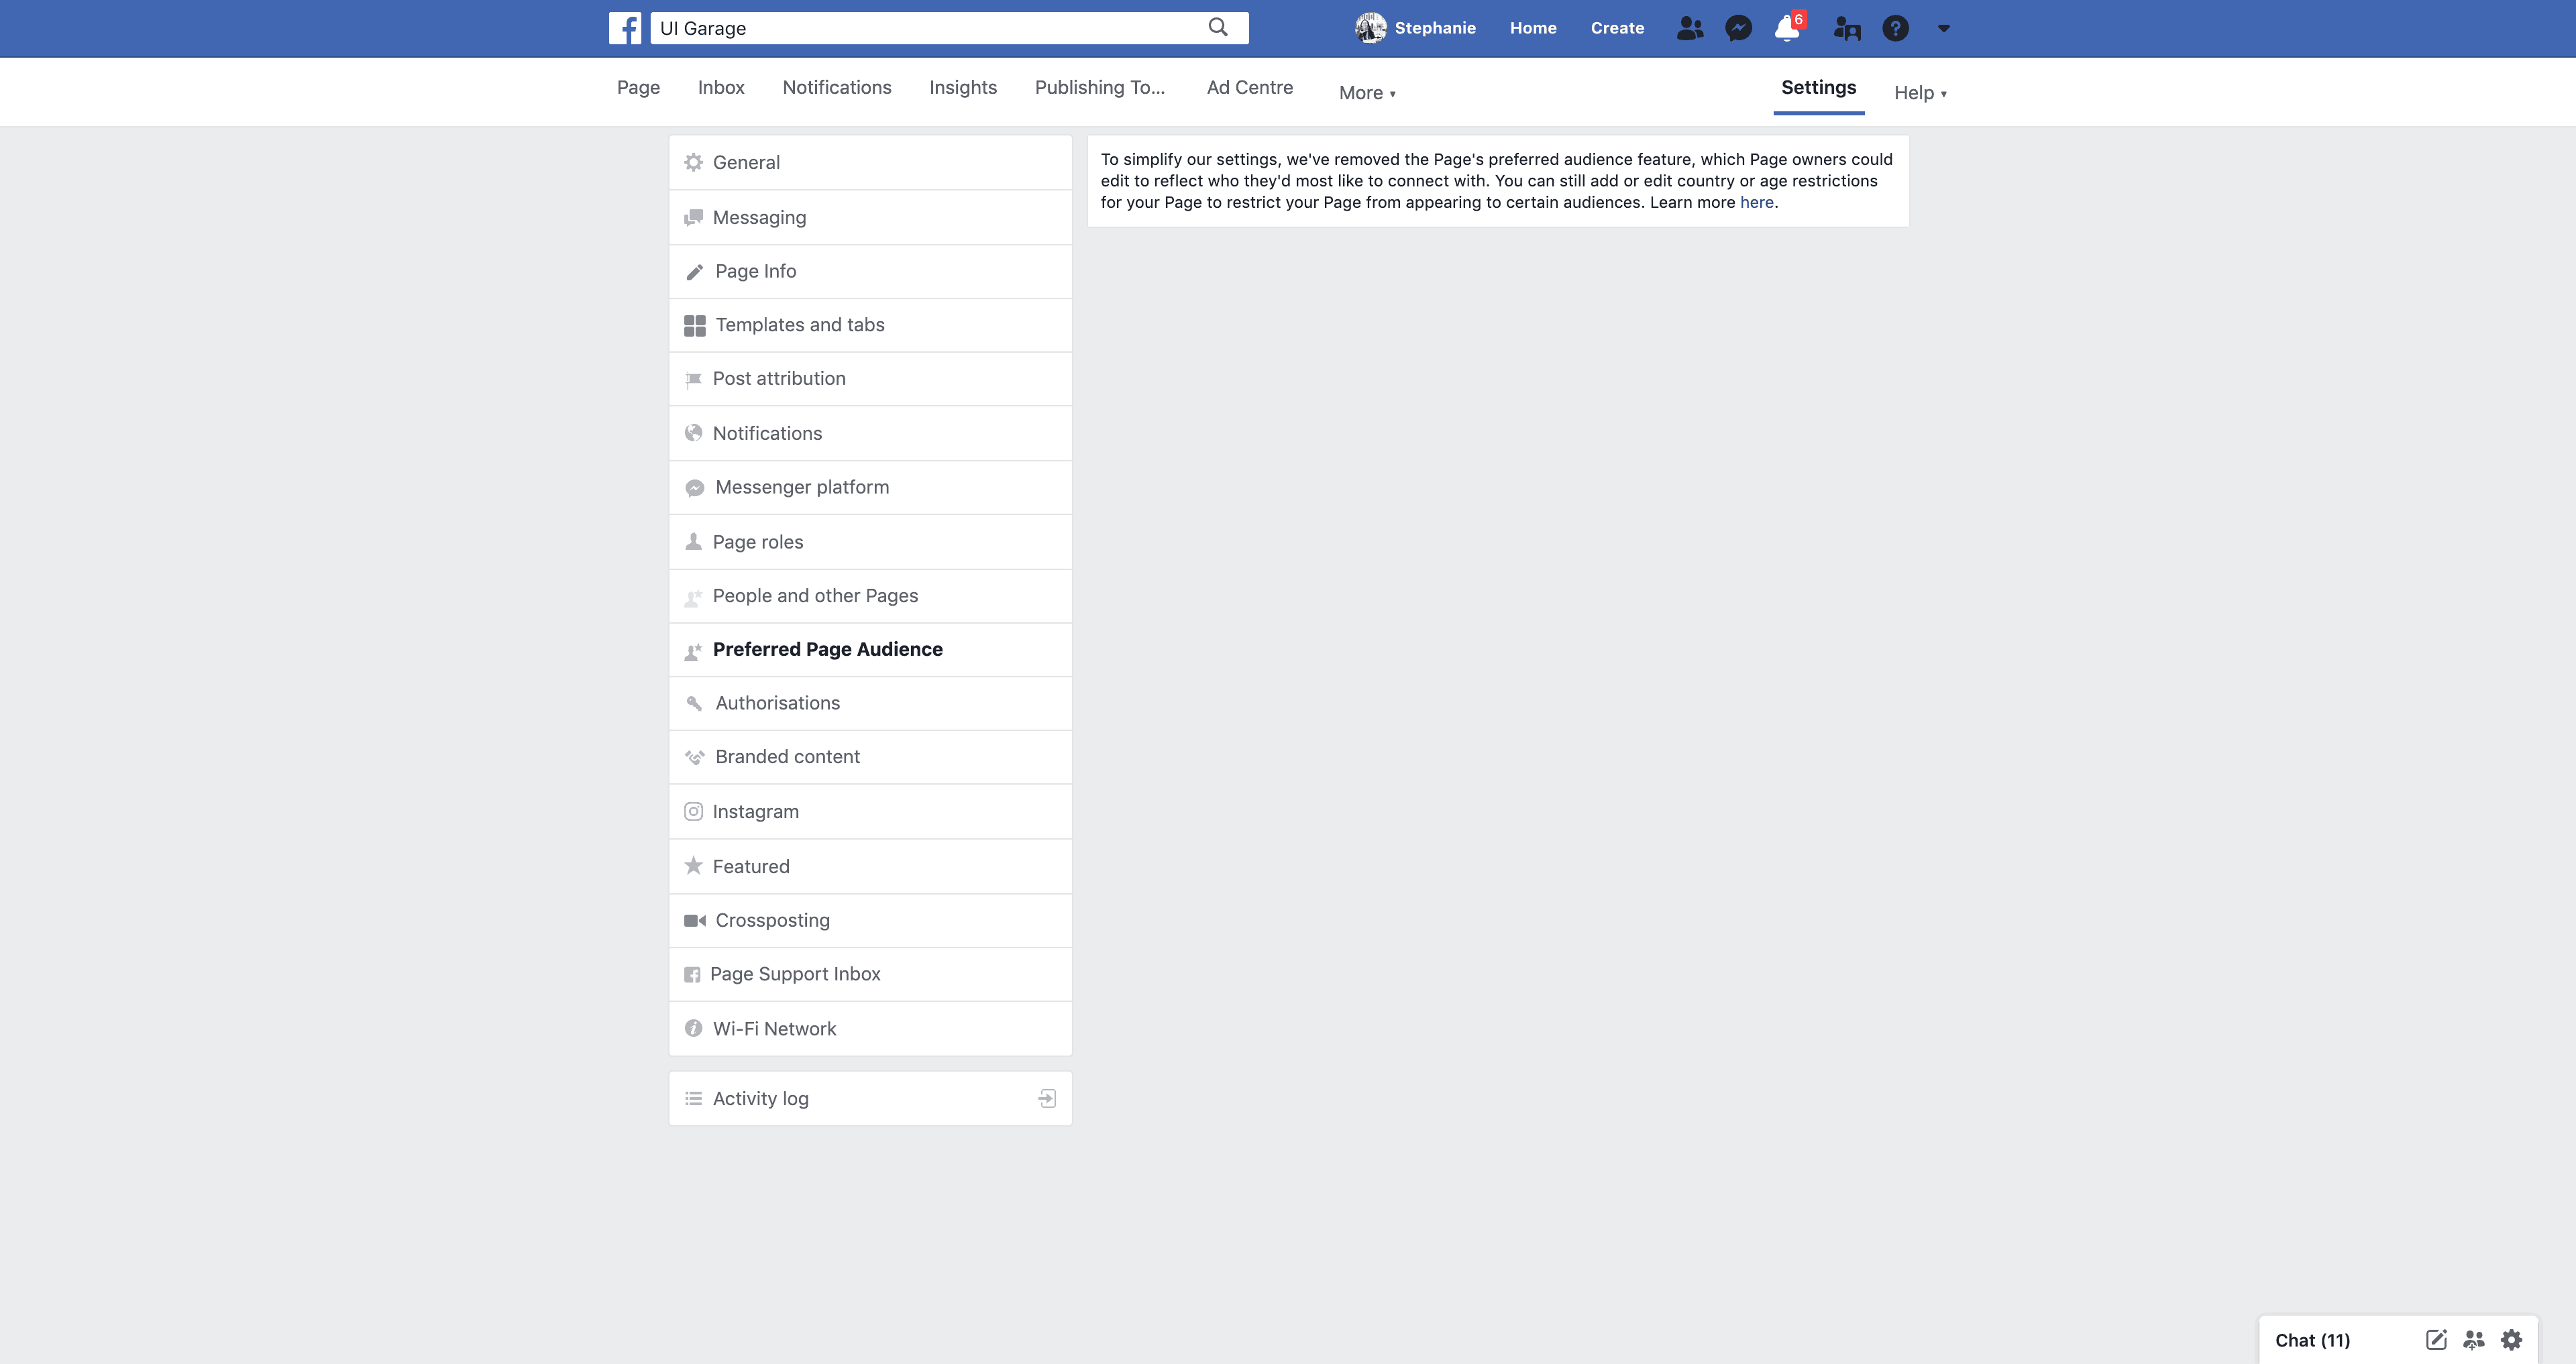 Page's Preferred Page Audience Settings by Facebook from UIGarage